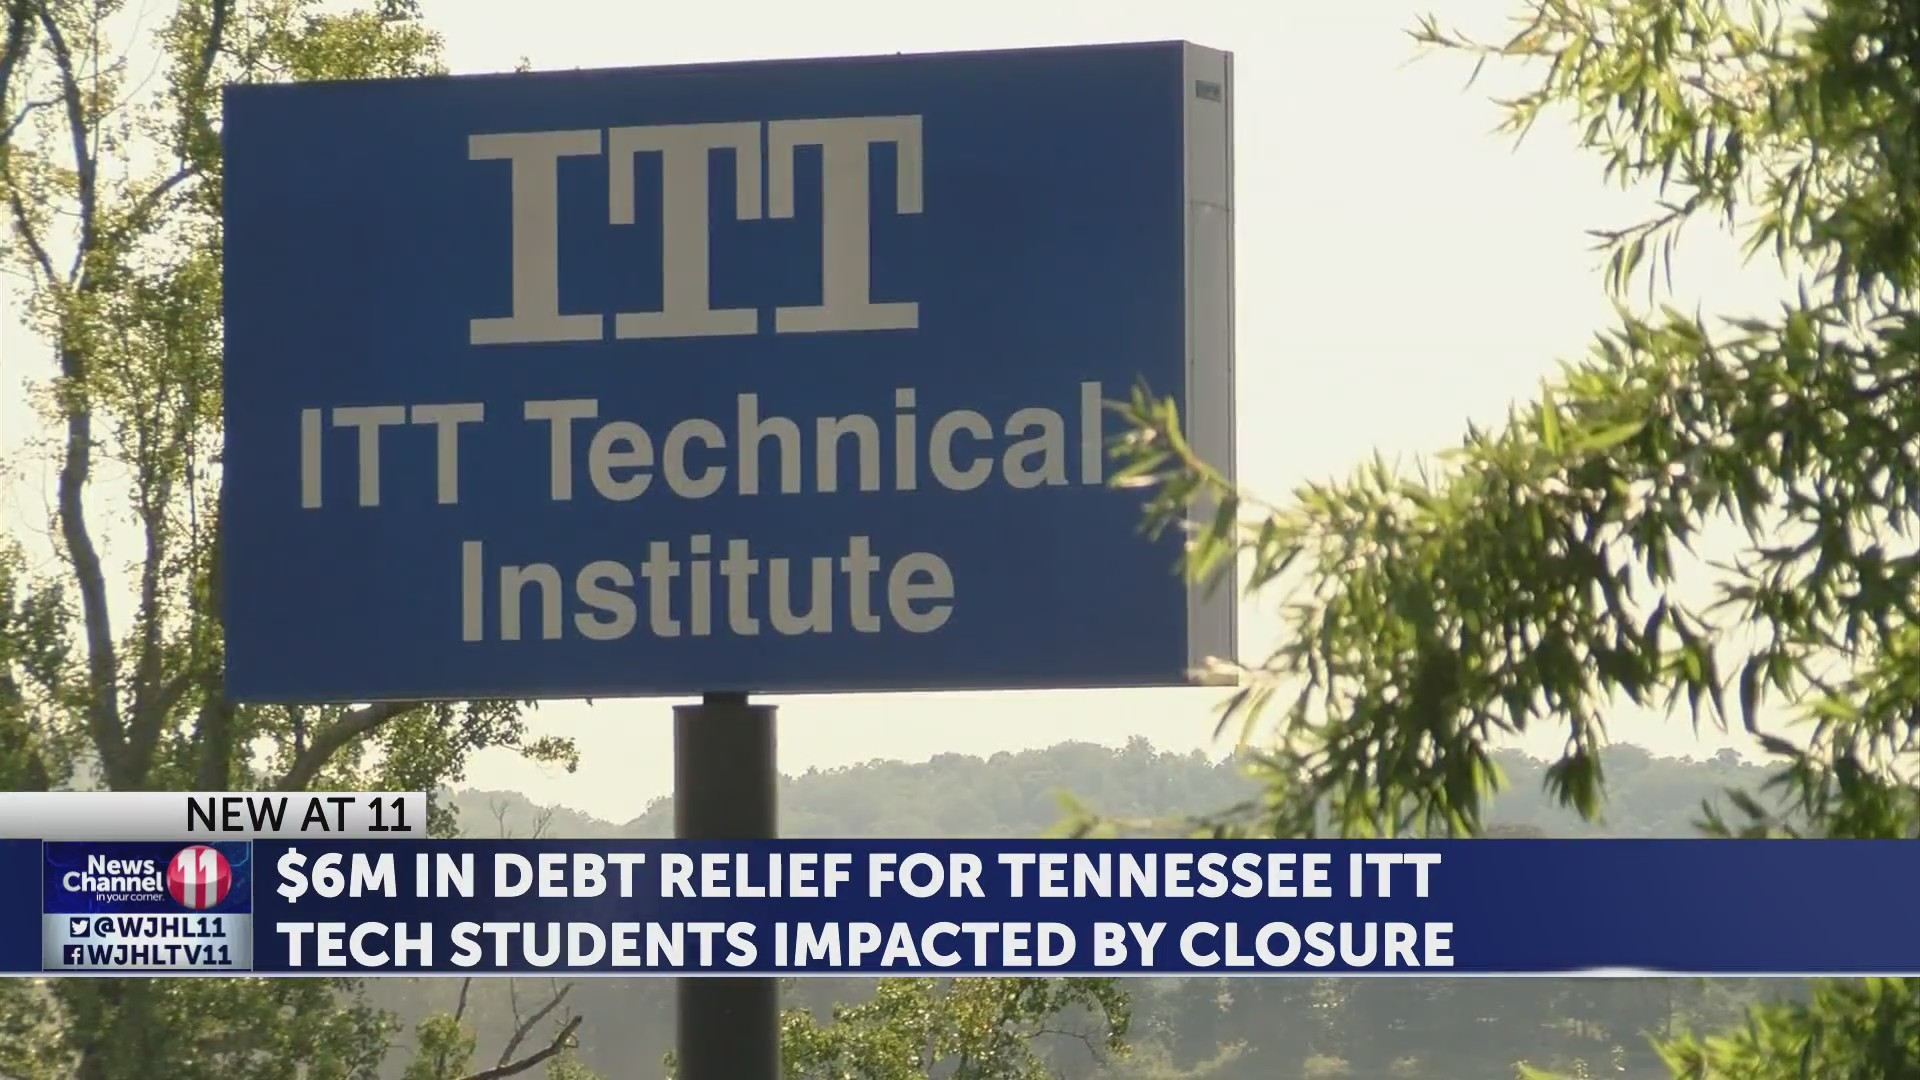 $6M in debt relief for TN ITT Tech students impacted by closure